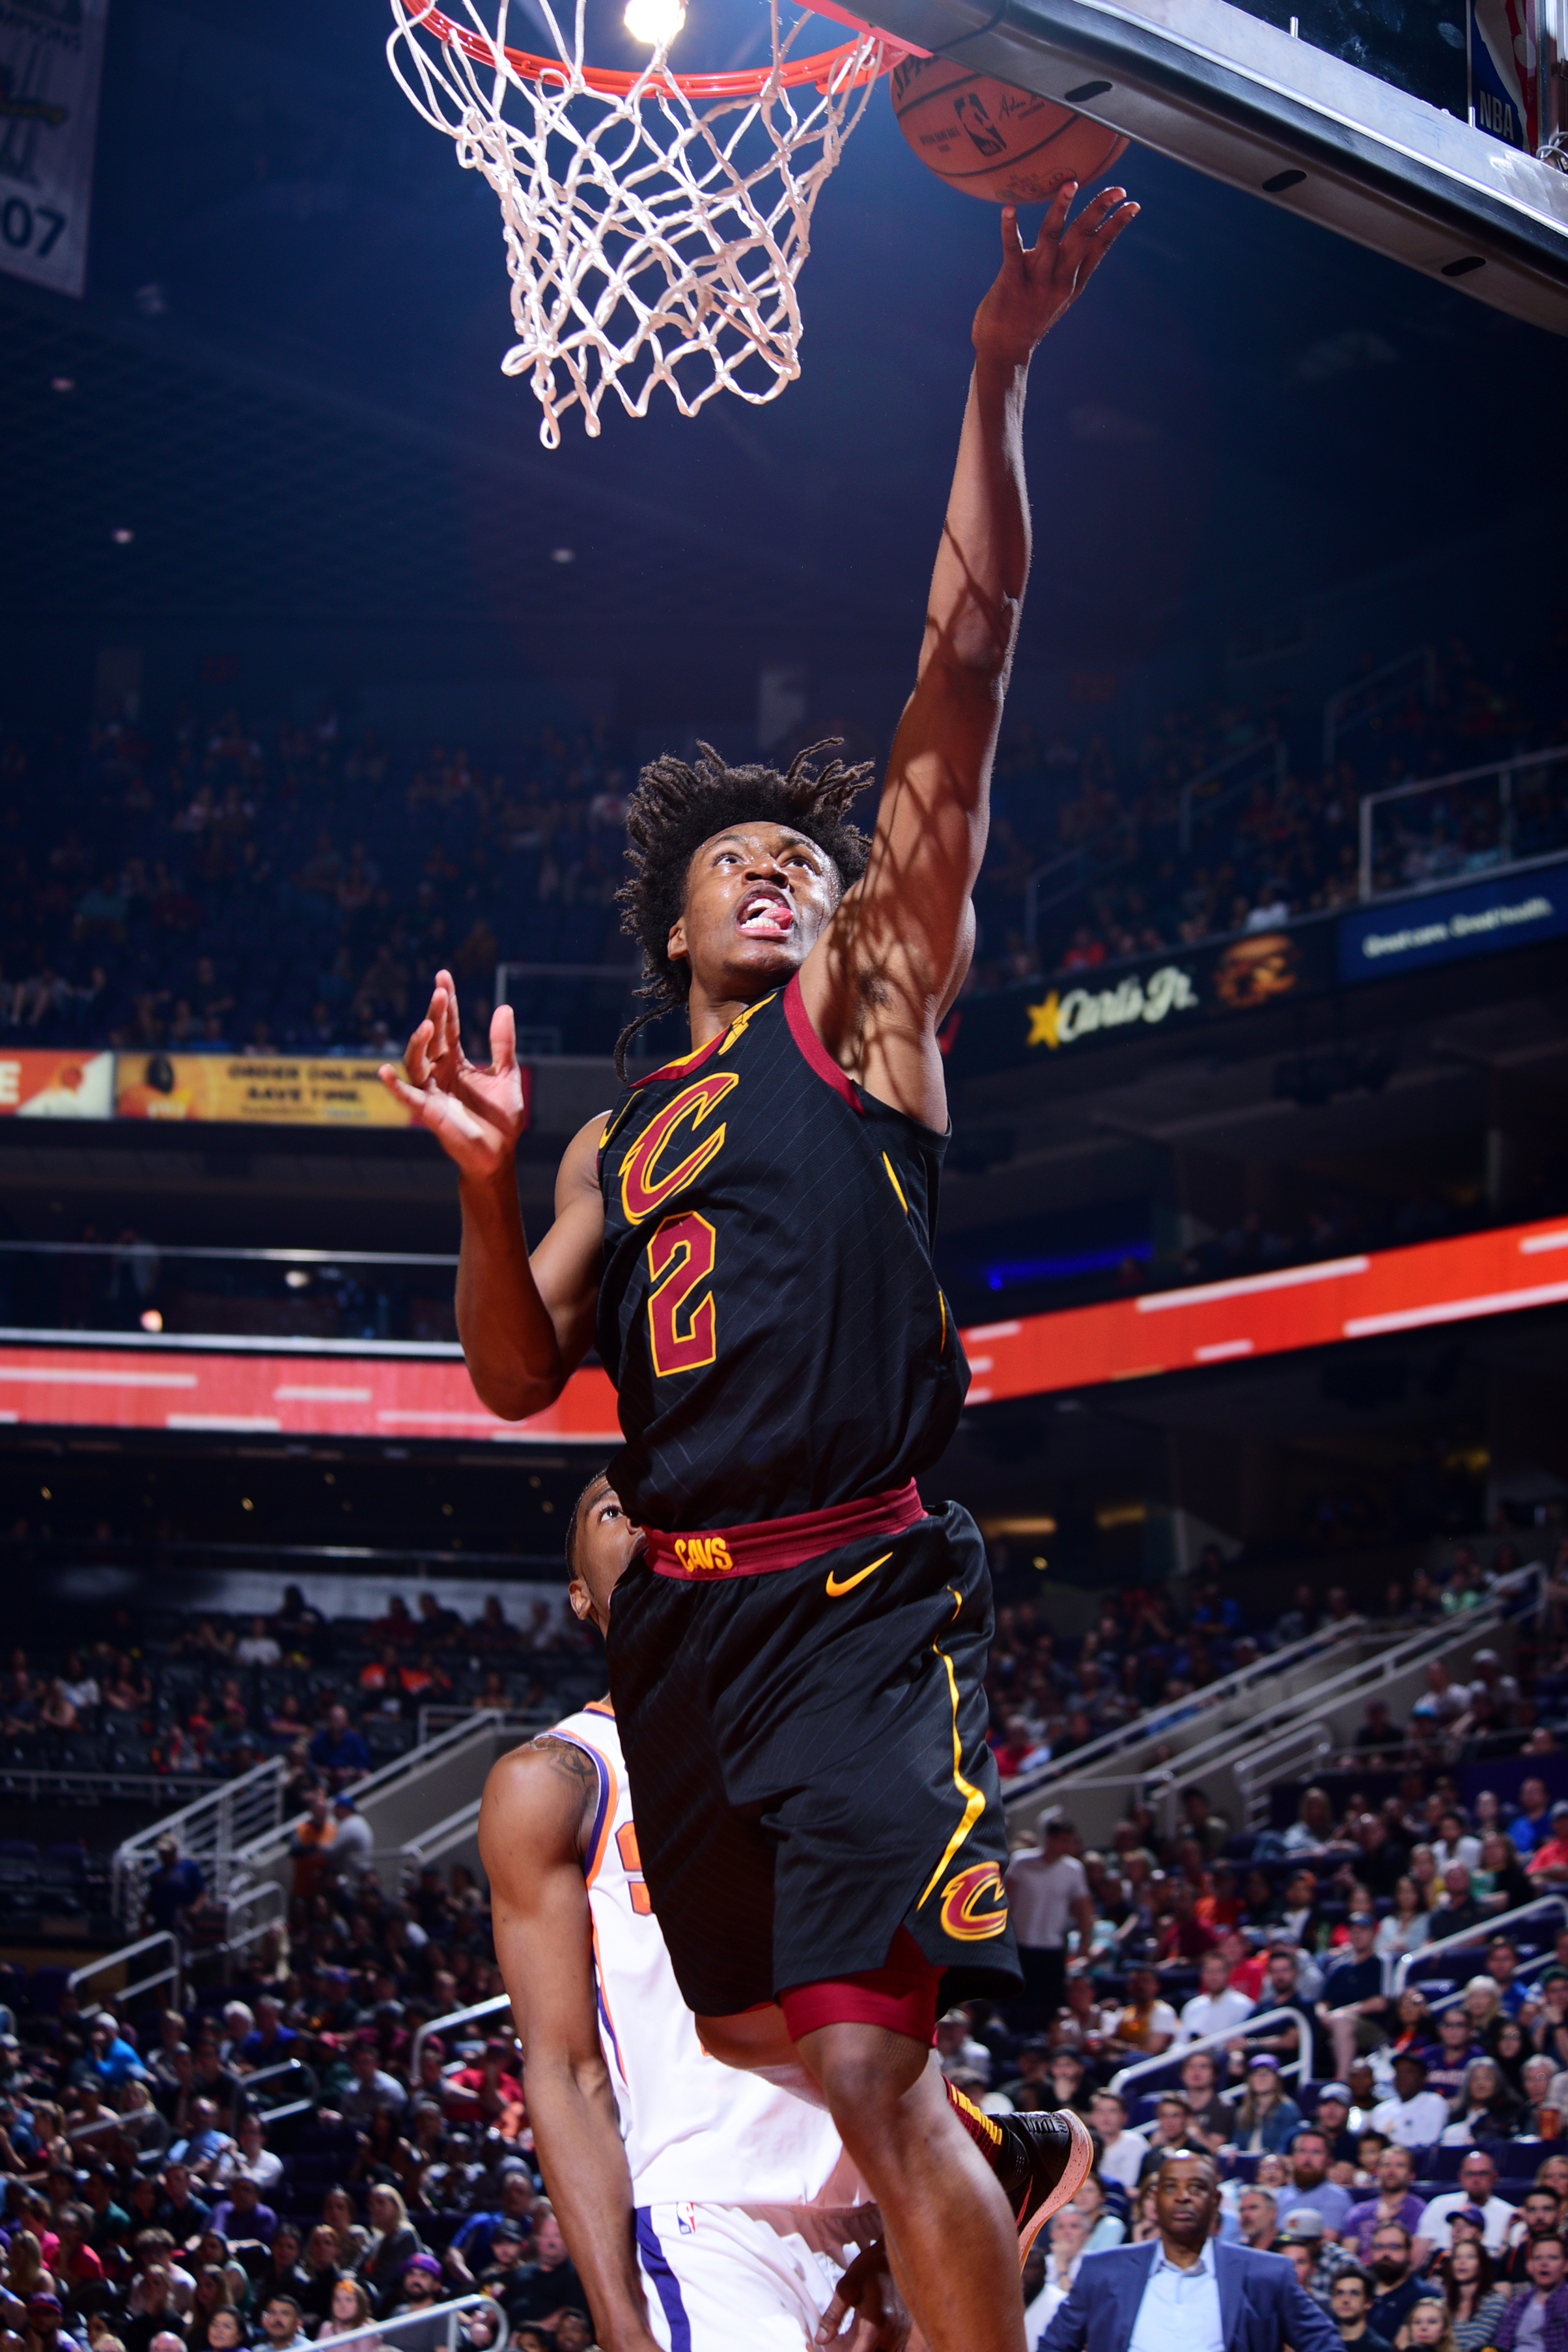 6502b55744d Collin Sexton of the Cleveland Cavaliers goes up for a layup against the  Phoenix Suns on April 1 at Talking Stick Resort Arena in Phoenix.